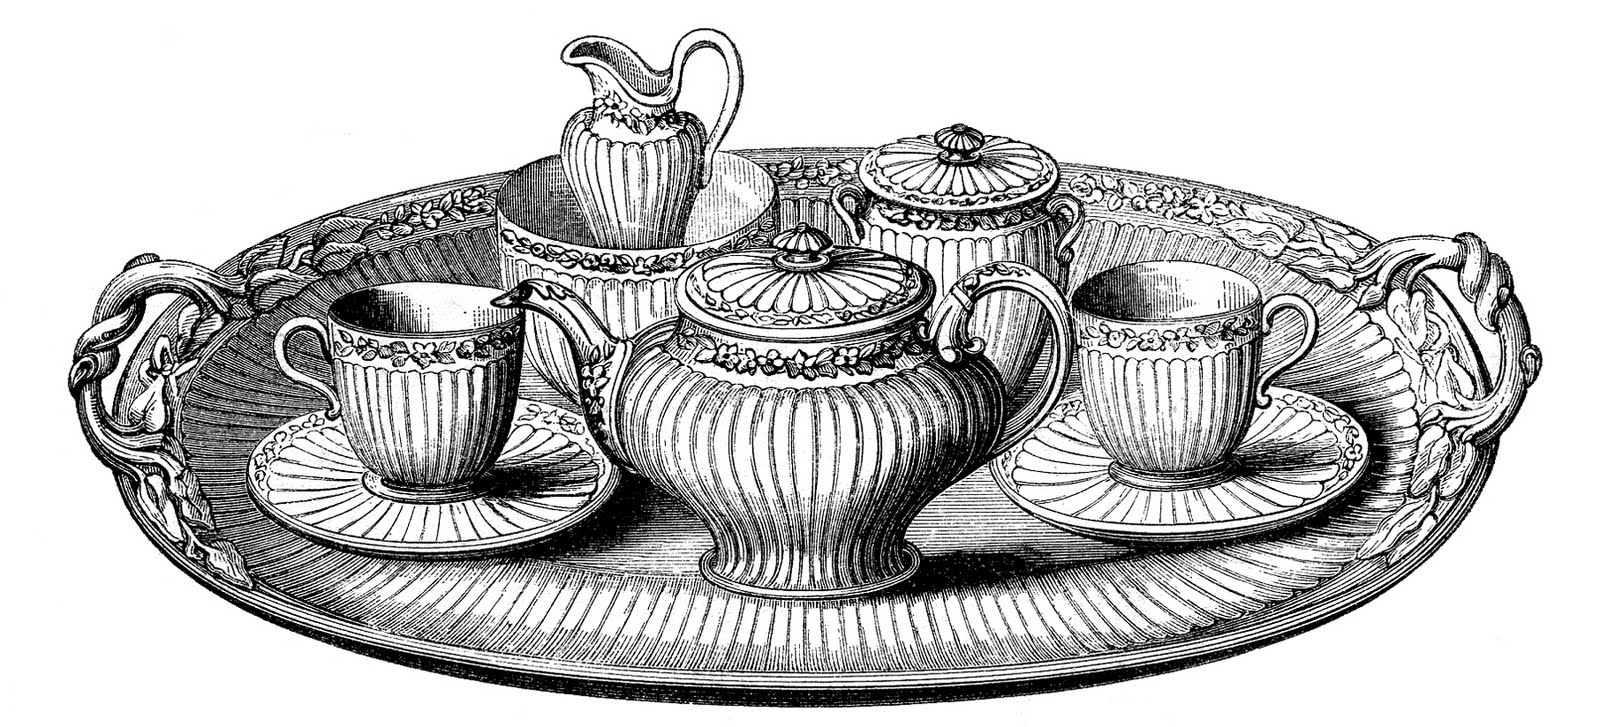 Teacup clipart tea set Platter Vintage Clip Fairy Art